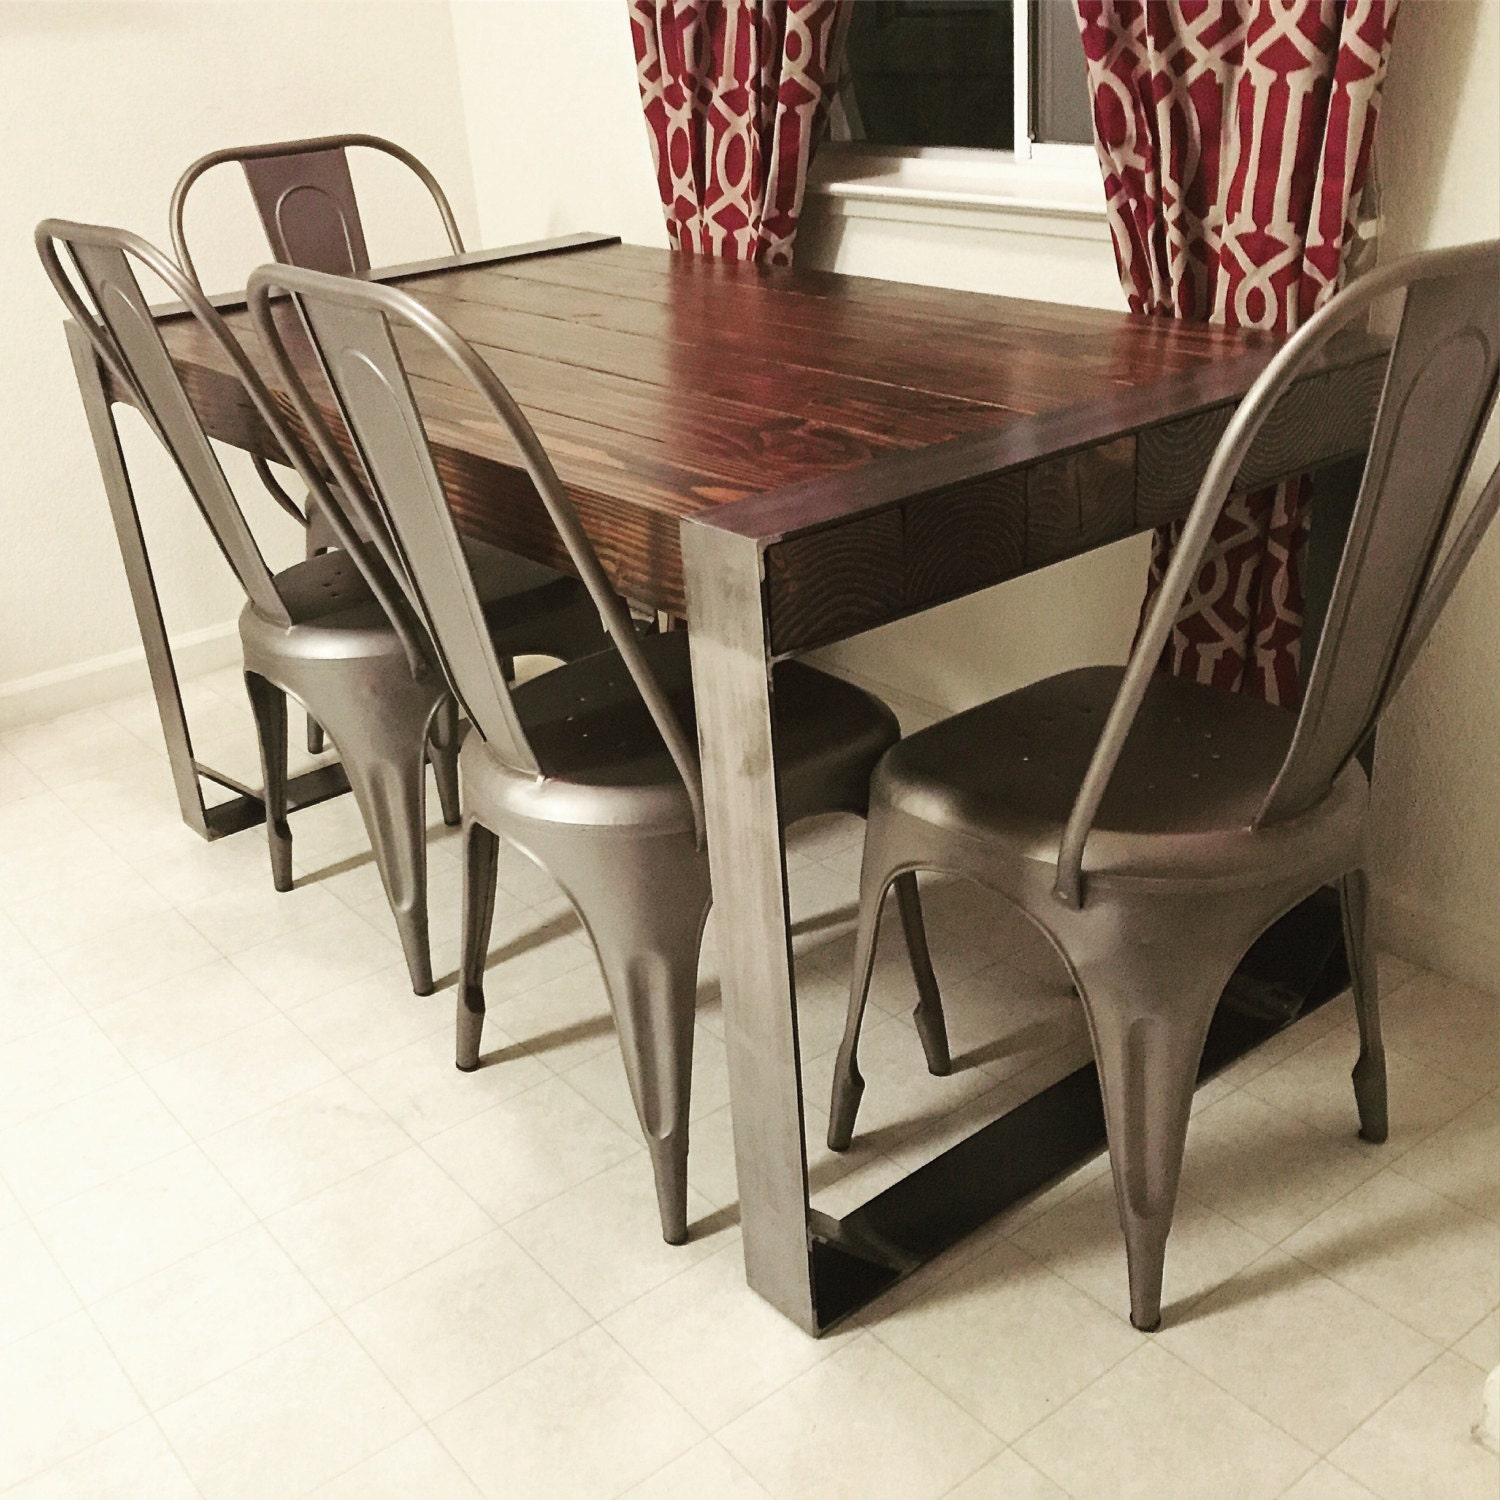 Modern Industrial Dining Table Sets: Modern Industrial Dining Table